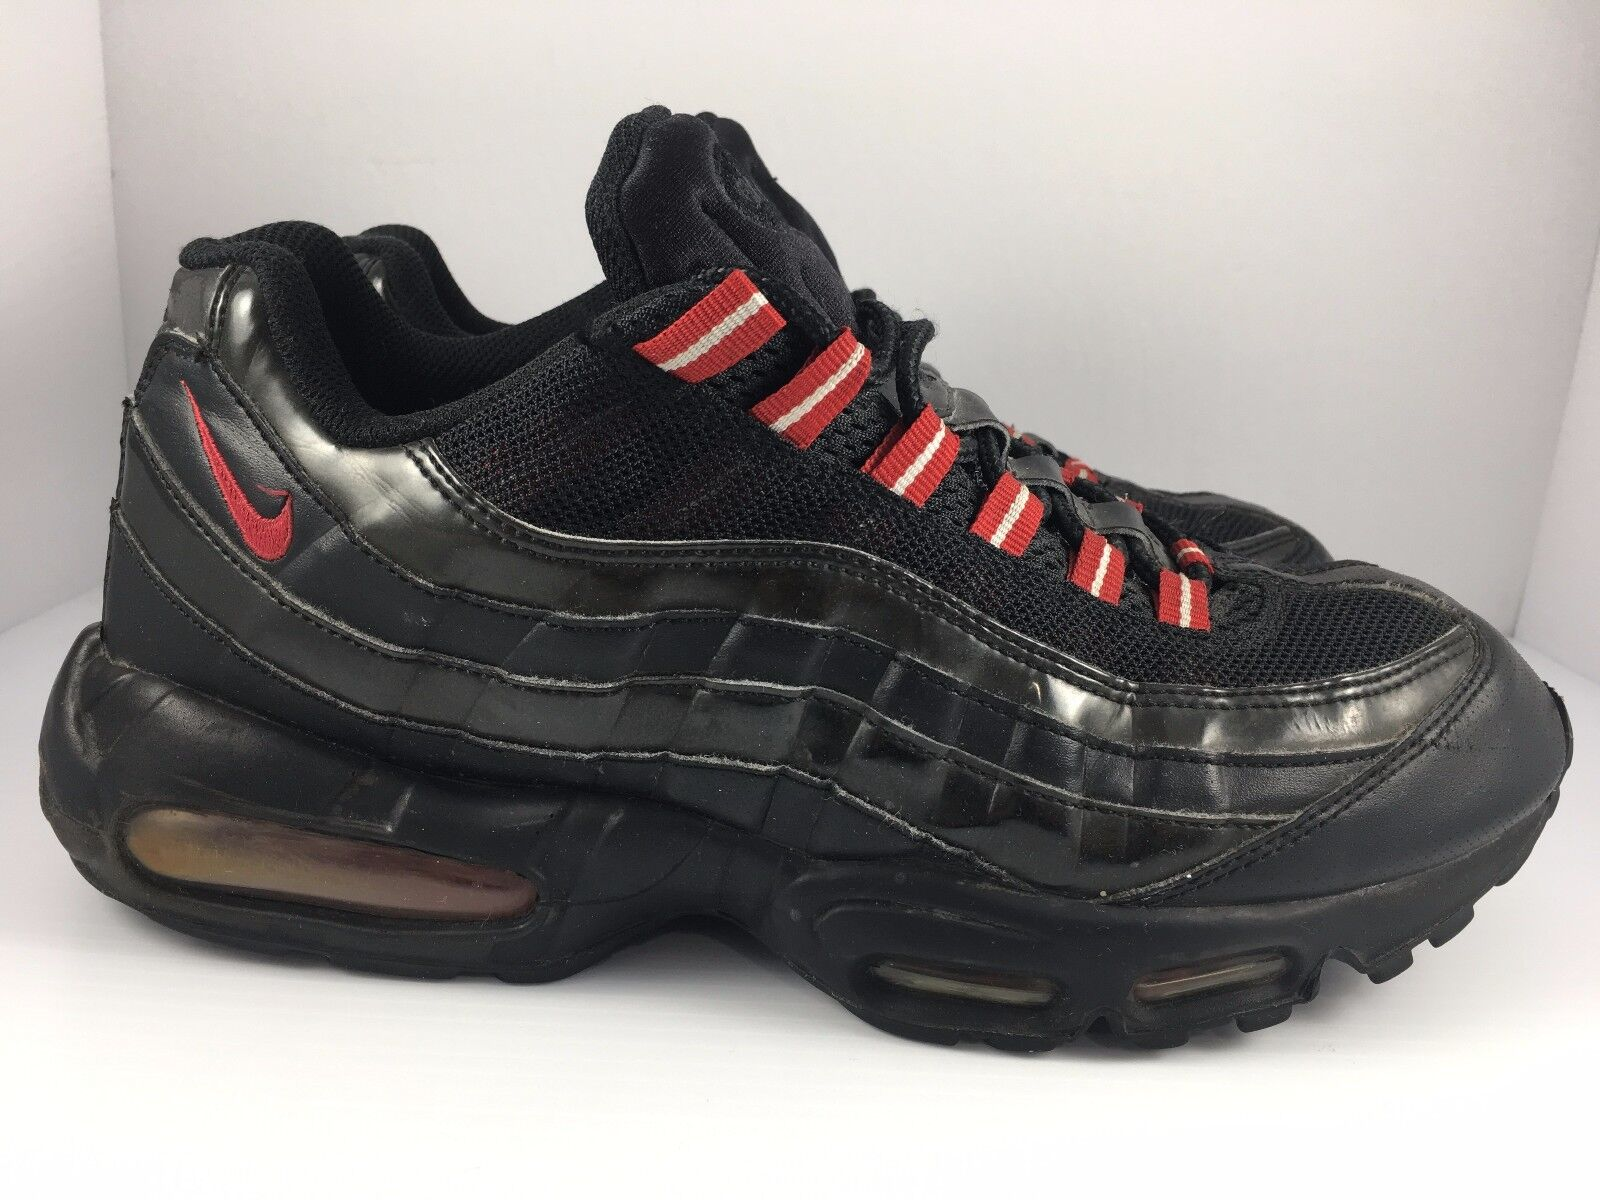 Nike Air Max 95 size 10.5 Black Patent Black + Varsity Red Sneakers [609048-037]